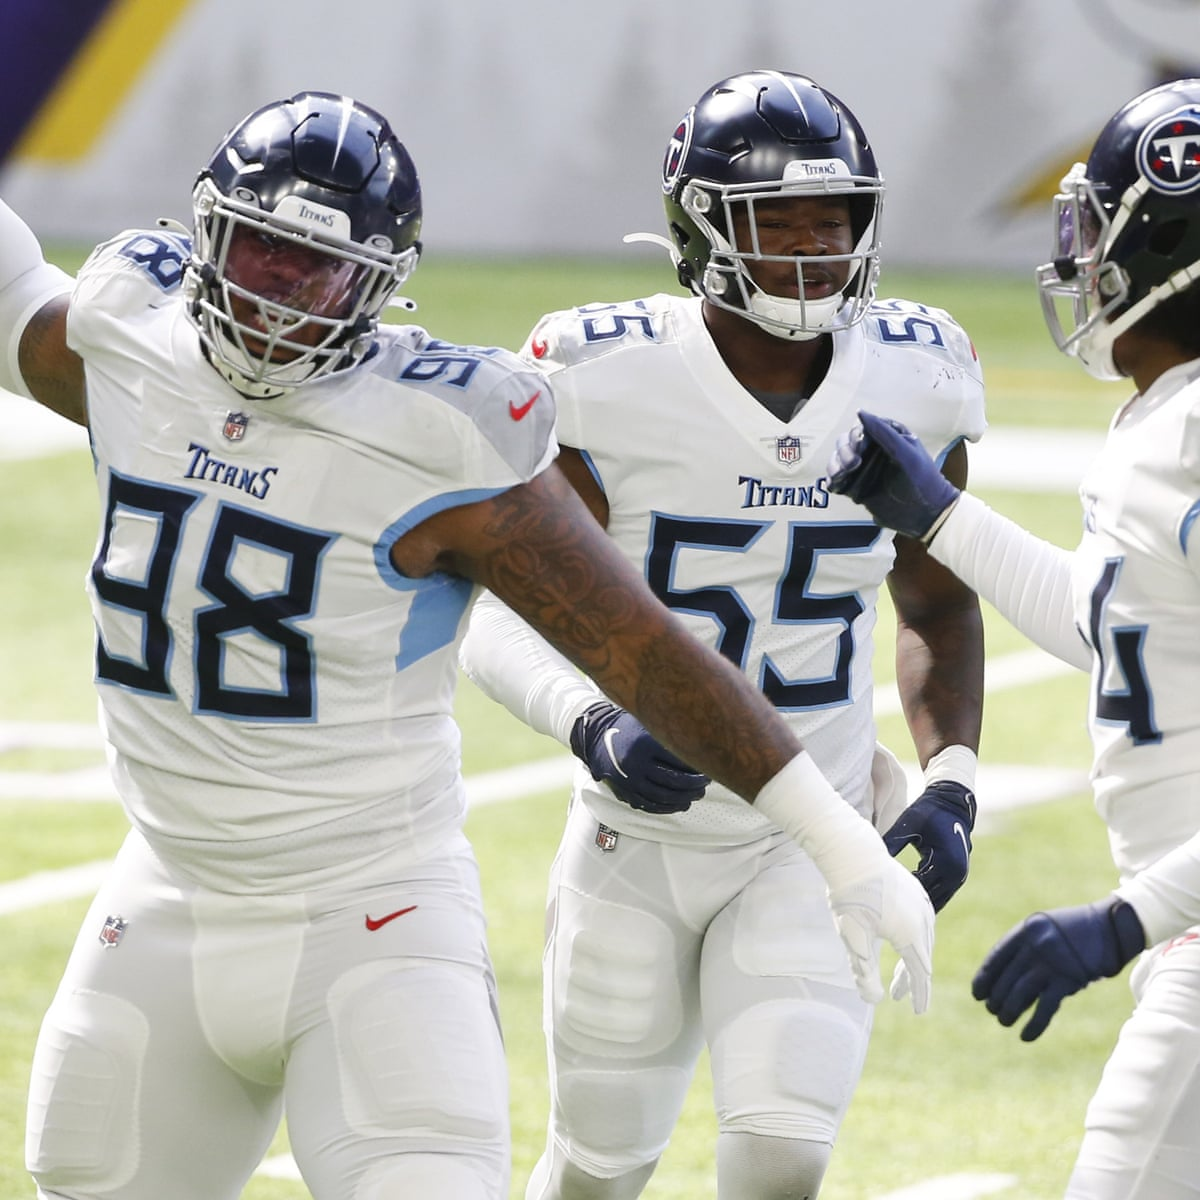 Titans Steelers Game In Danger After Players Test Positive For Covid 19 Tennessee Titans The Guardian